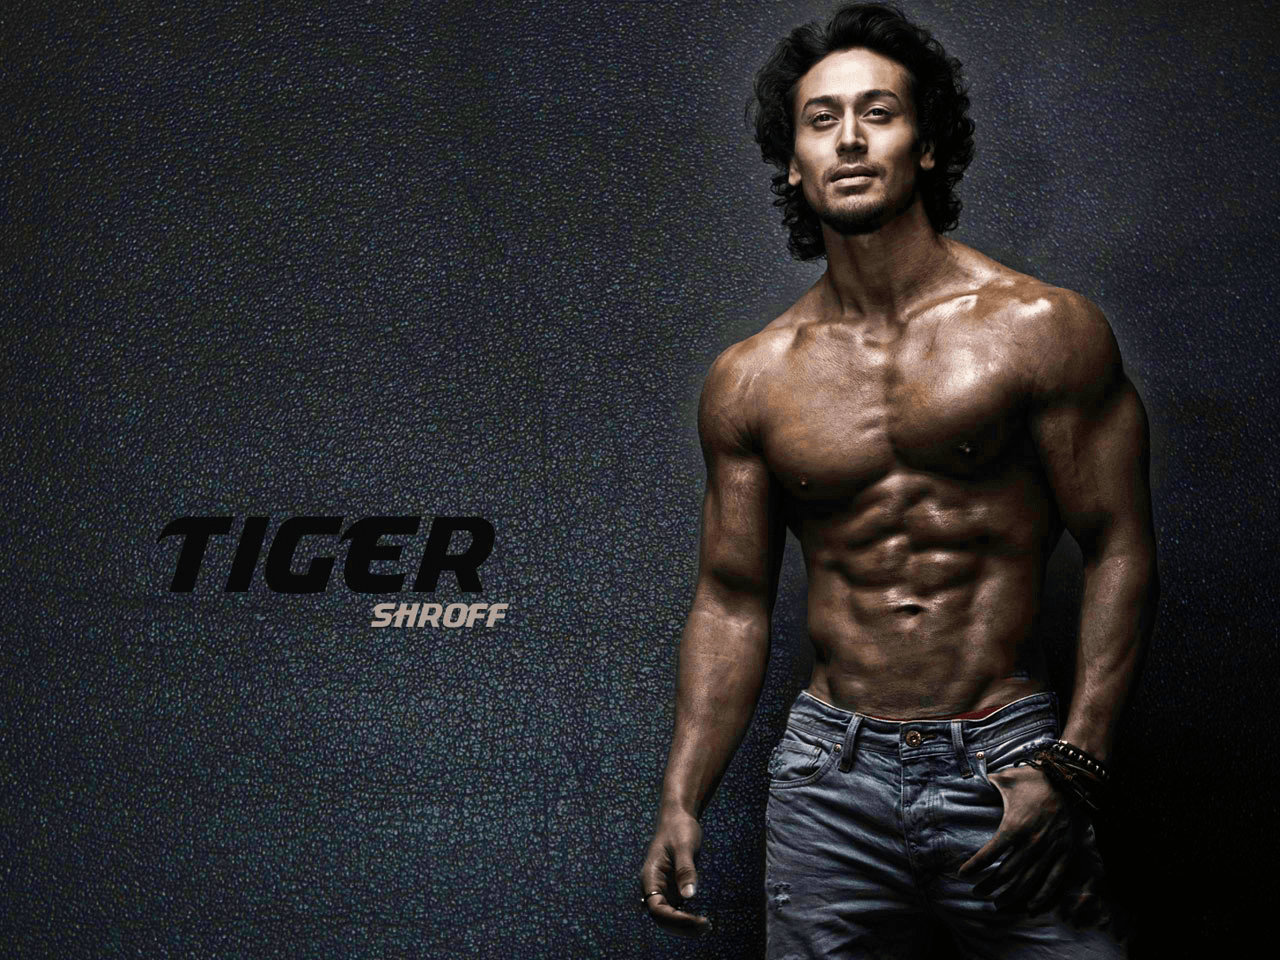 Tiger Shroff Age, Photos(image), Song, Movie, Height, Girlfriend, Sister, Date Of Birth, Net Worth, Biography, Education, Awards, Instagram, Twitter, Facebook, Wiki, Imdb, Youtube (1)